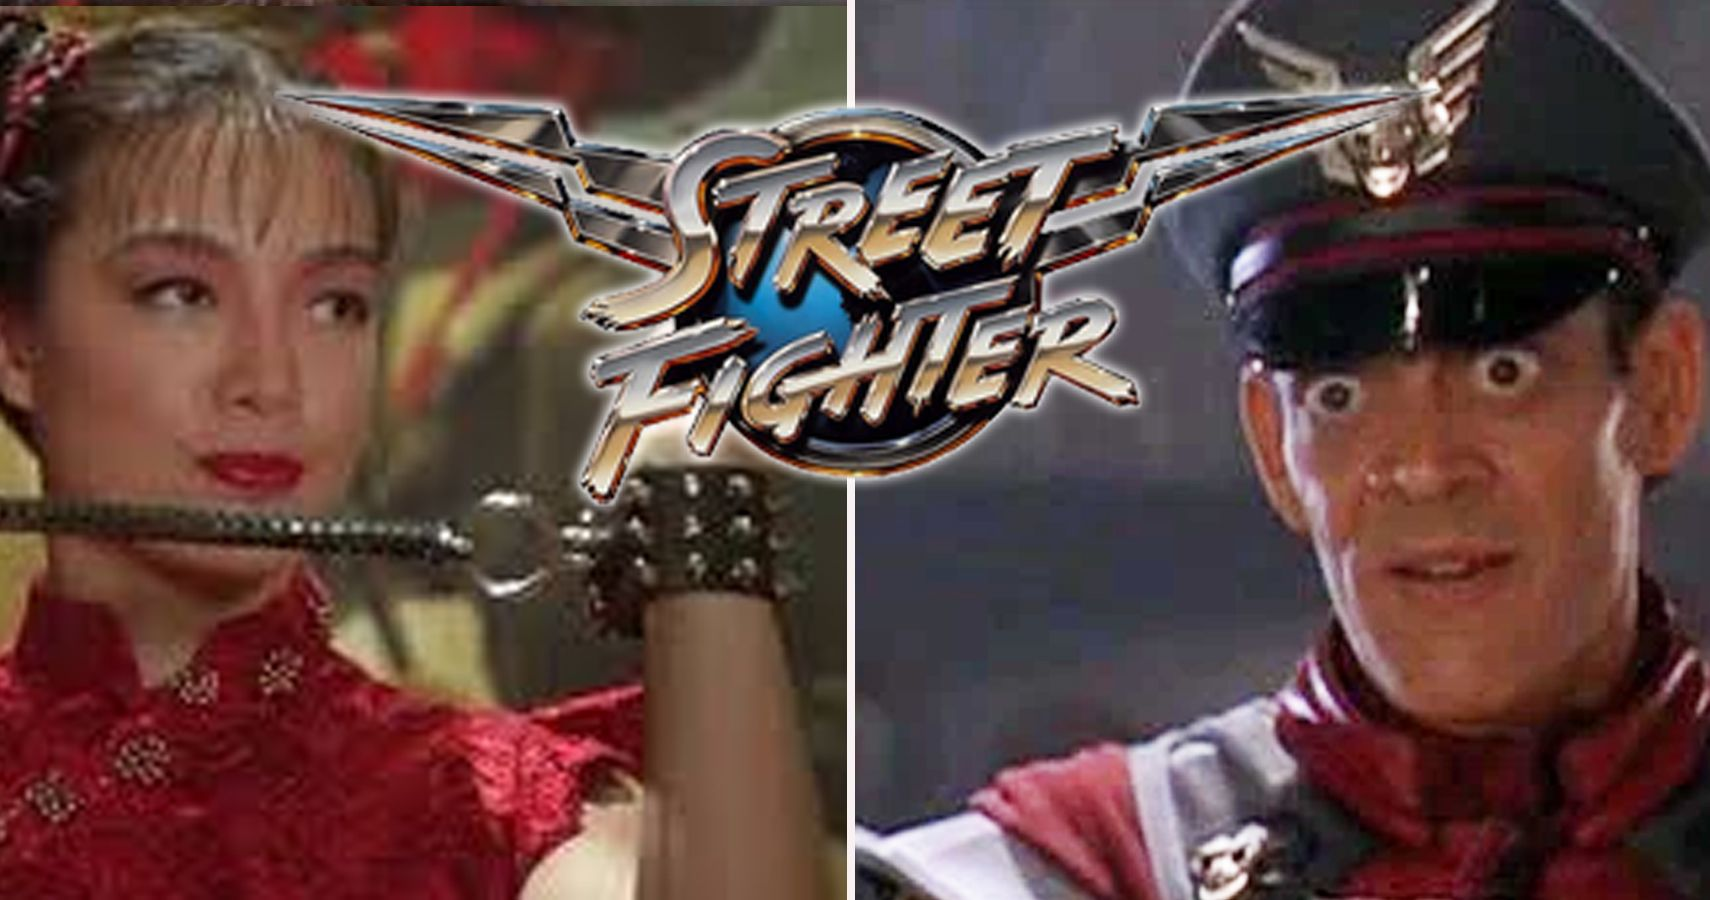 25 Dark Facts You Never Knew About The Failed Street Fighter Movies